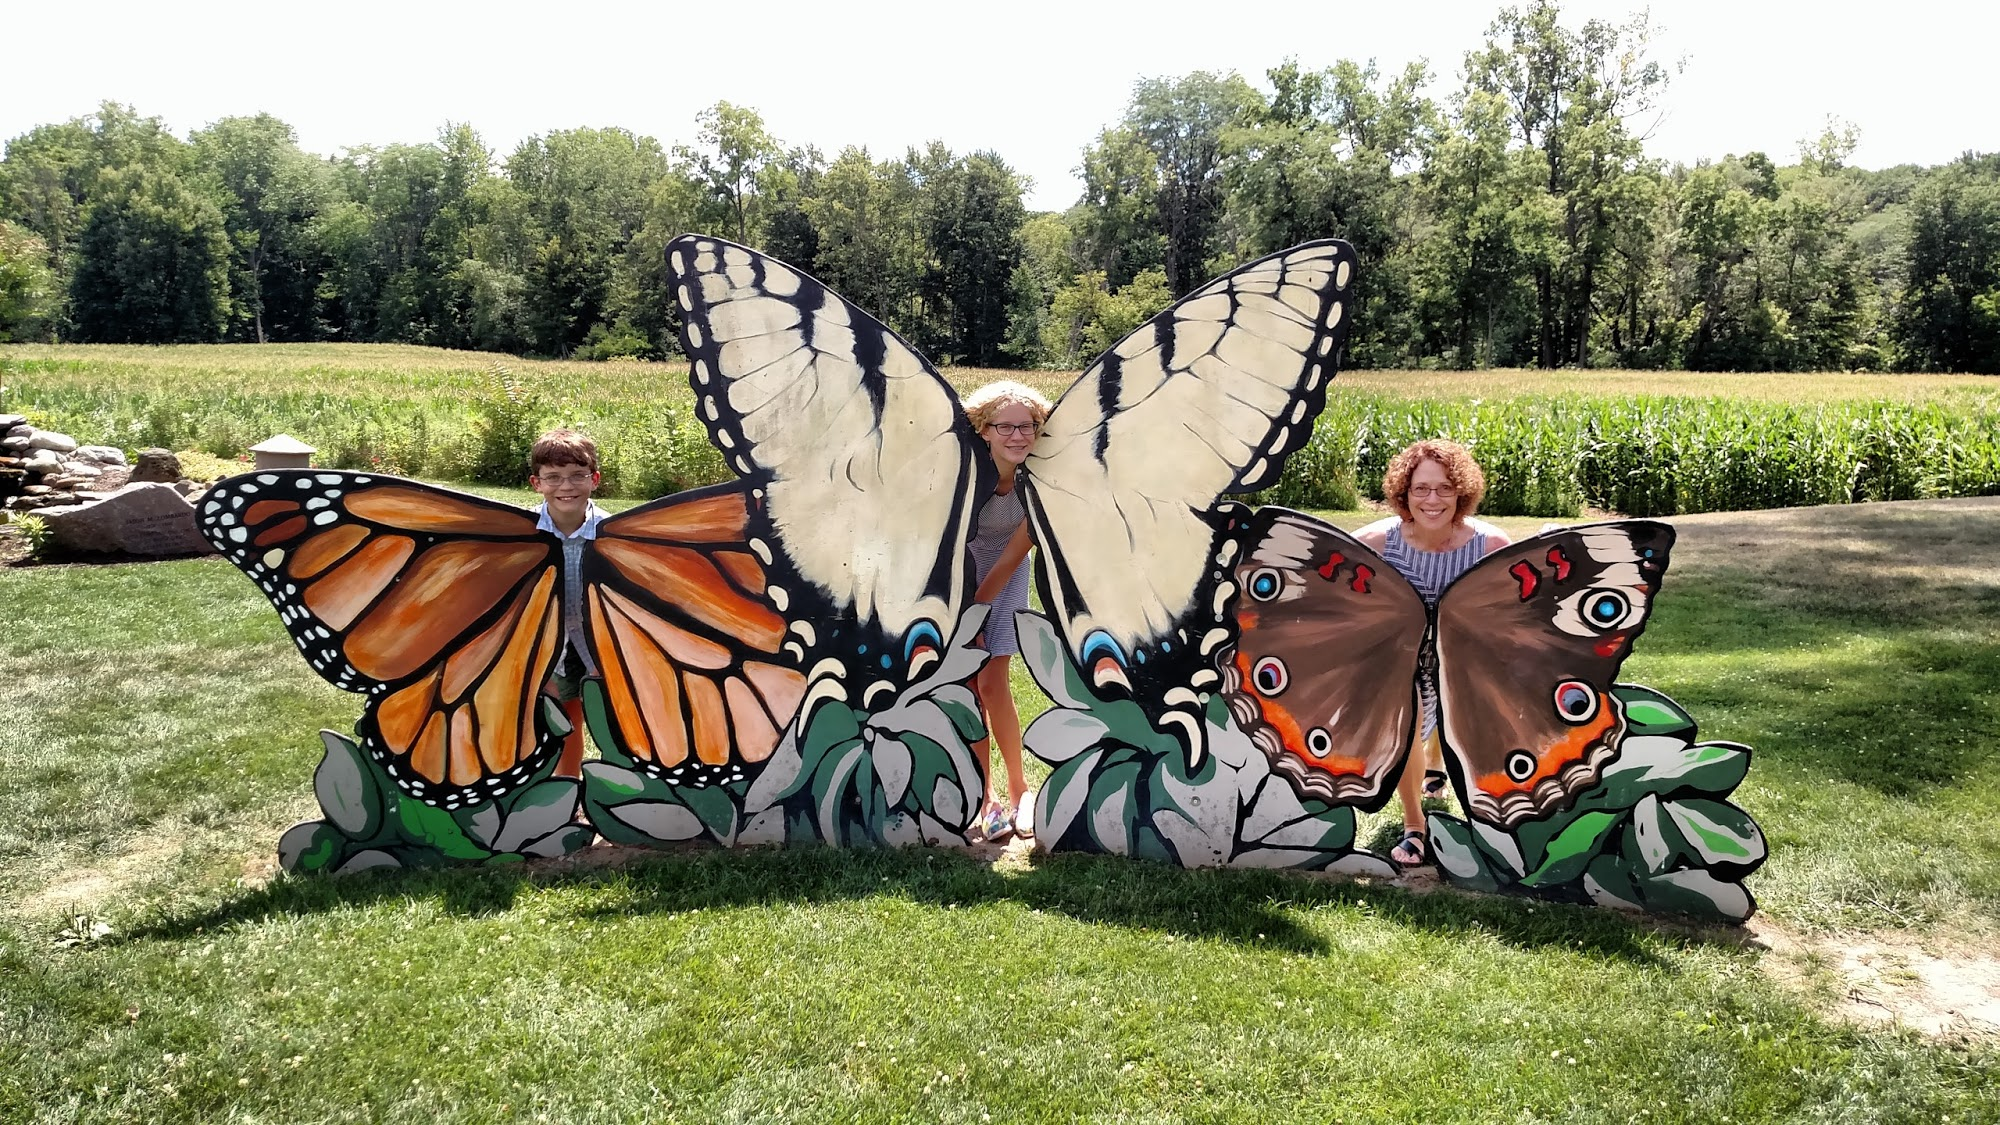 The Butterfly House 11455 Obee Rd, Whitehouse